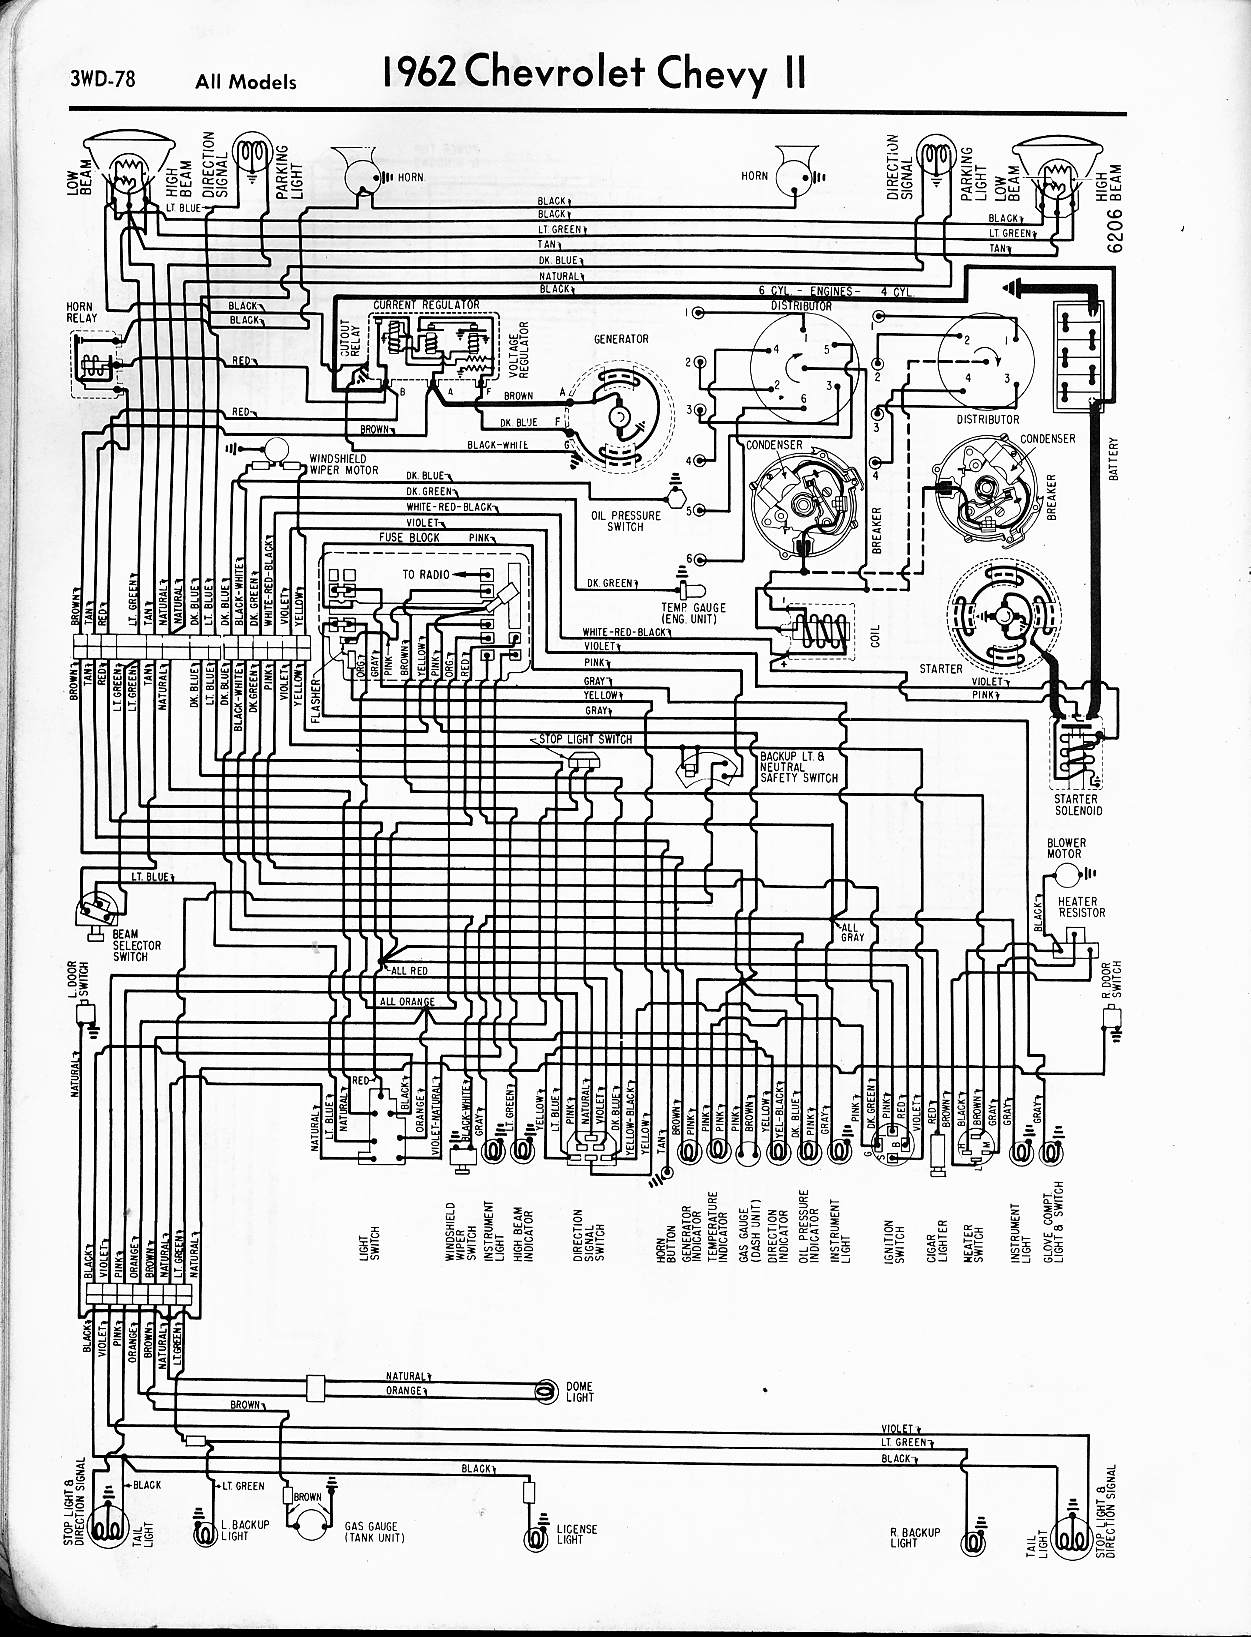 MWireChev62_3WD 078 1962 chevy truck wiring diagram 1960 chevy truck wiring diagram 1962 impala wiring harness at eliteediting.co